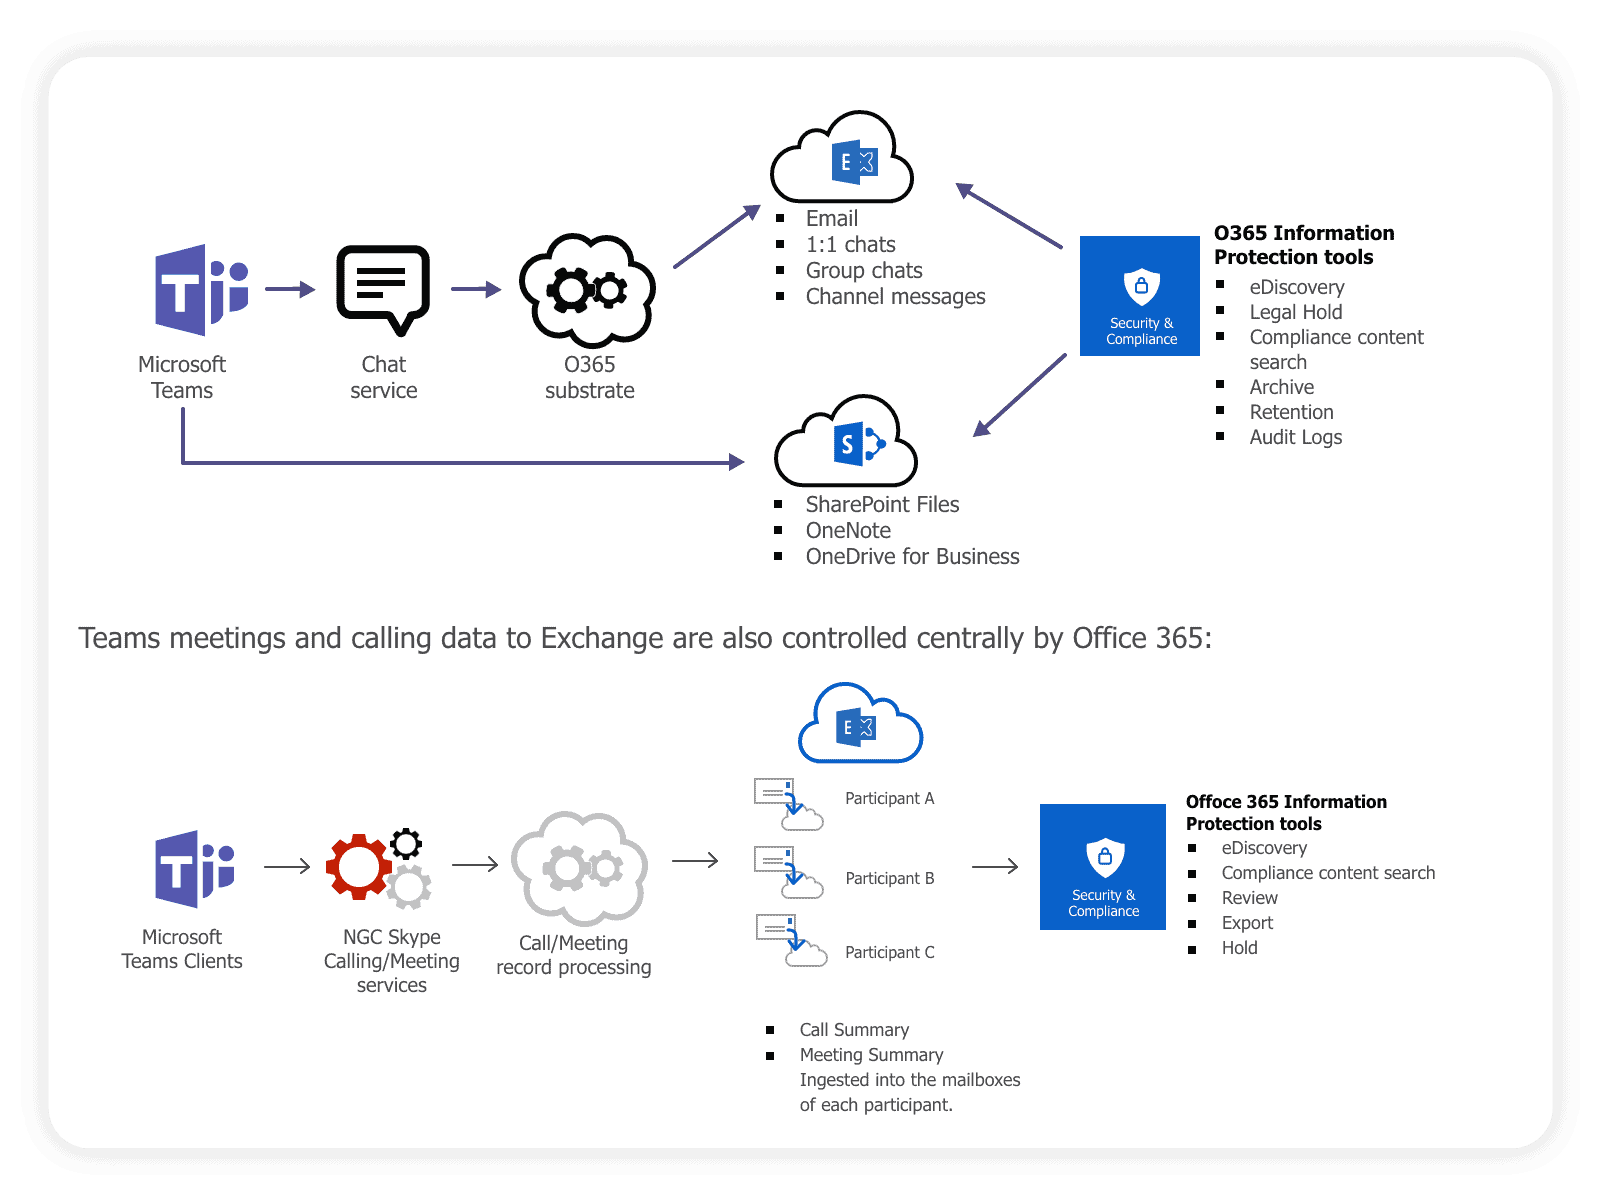 flow of information in the Microsoft 365